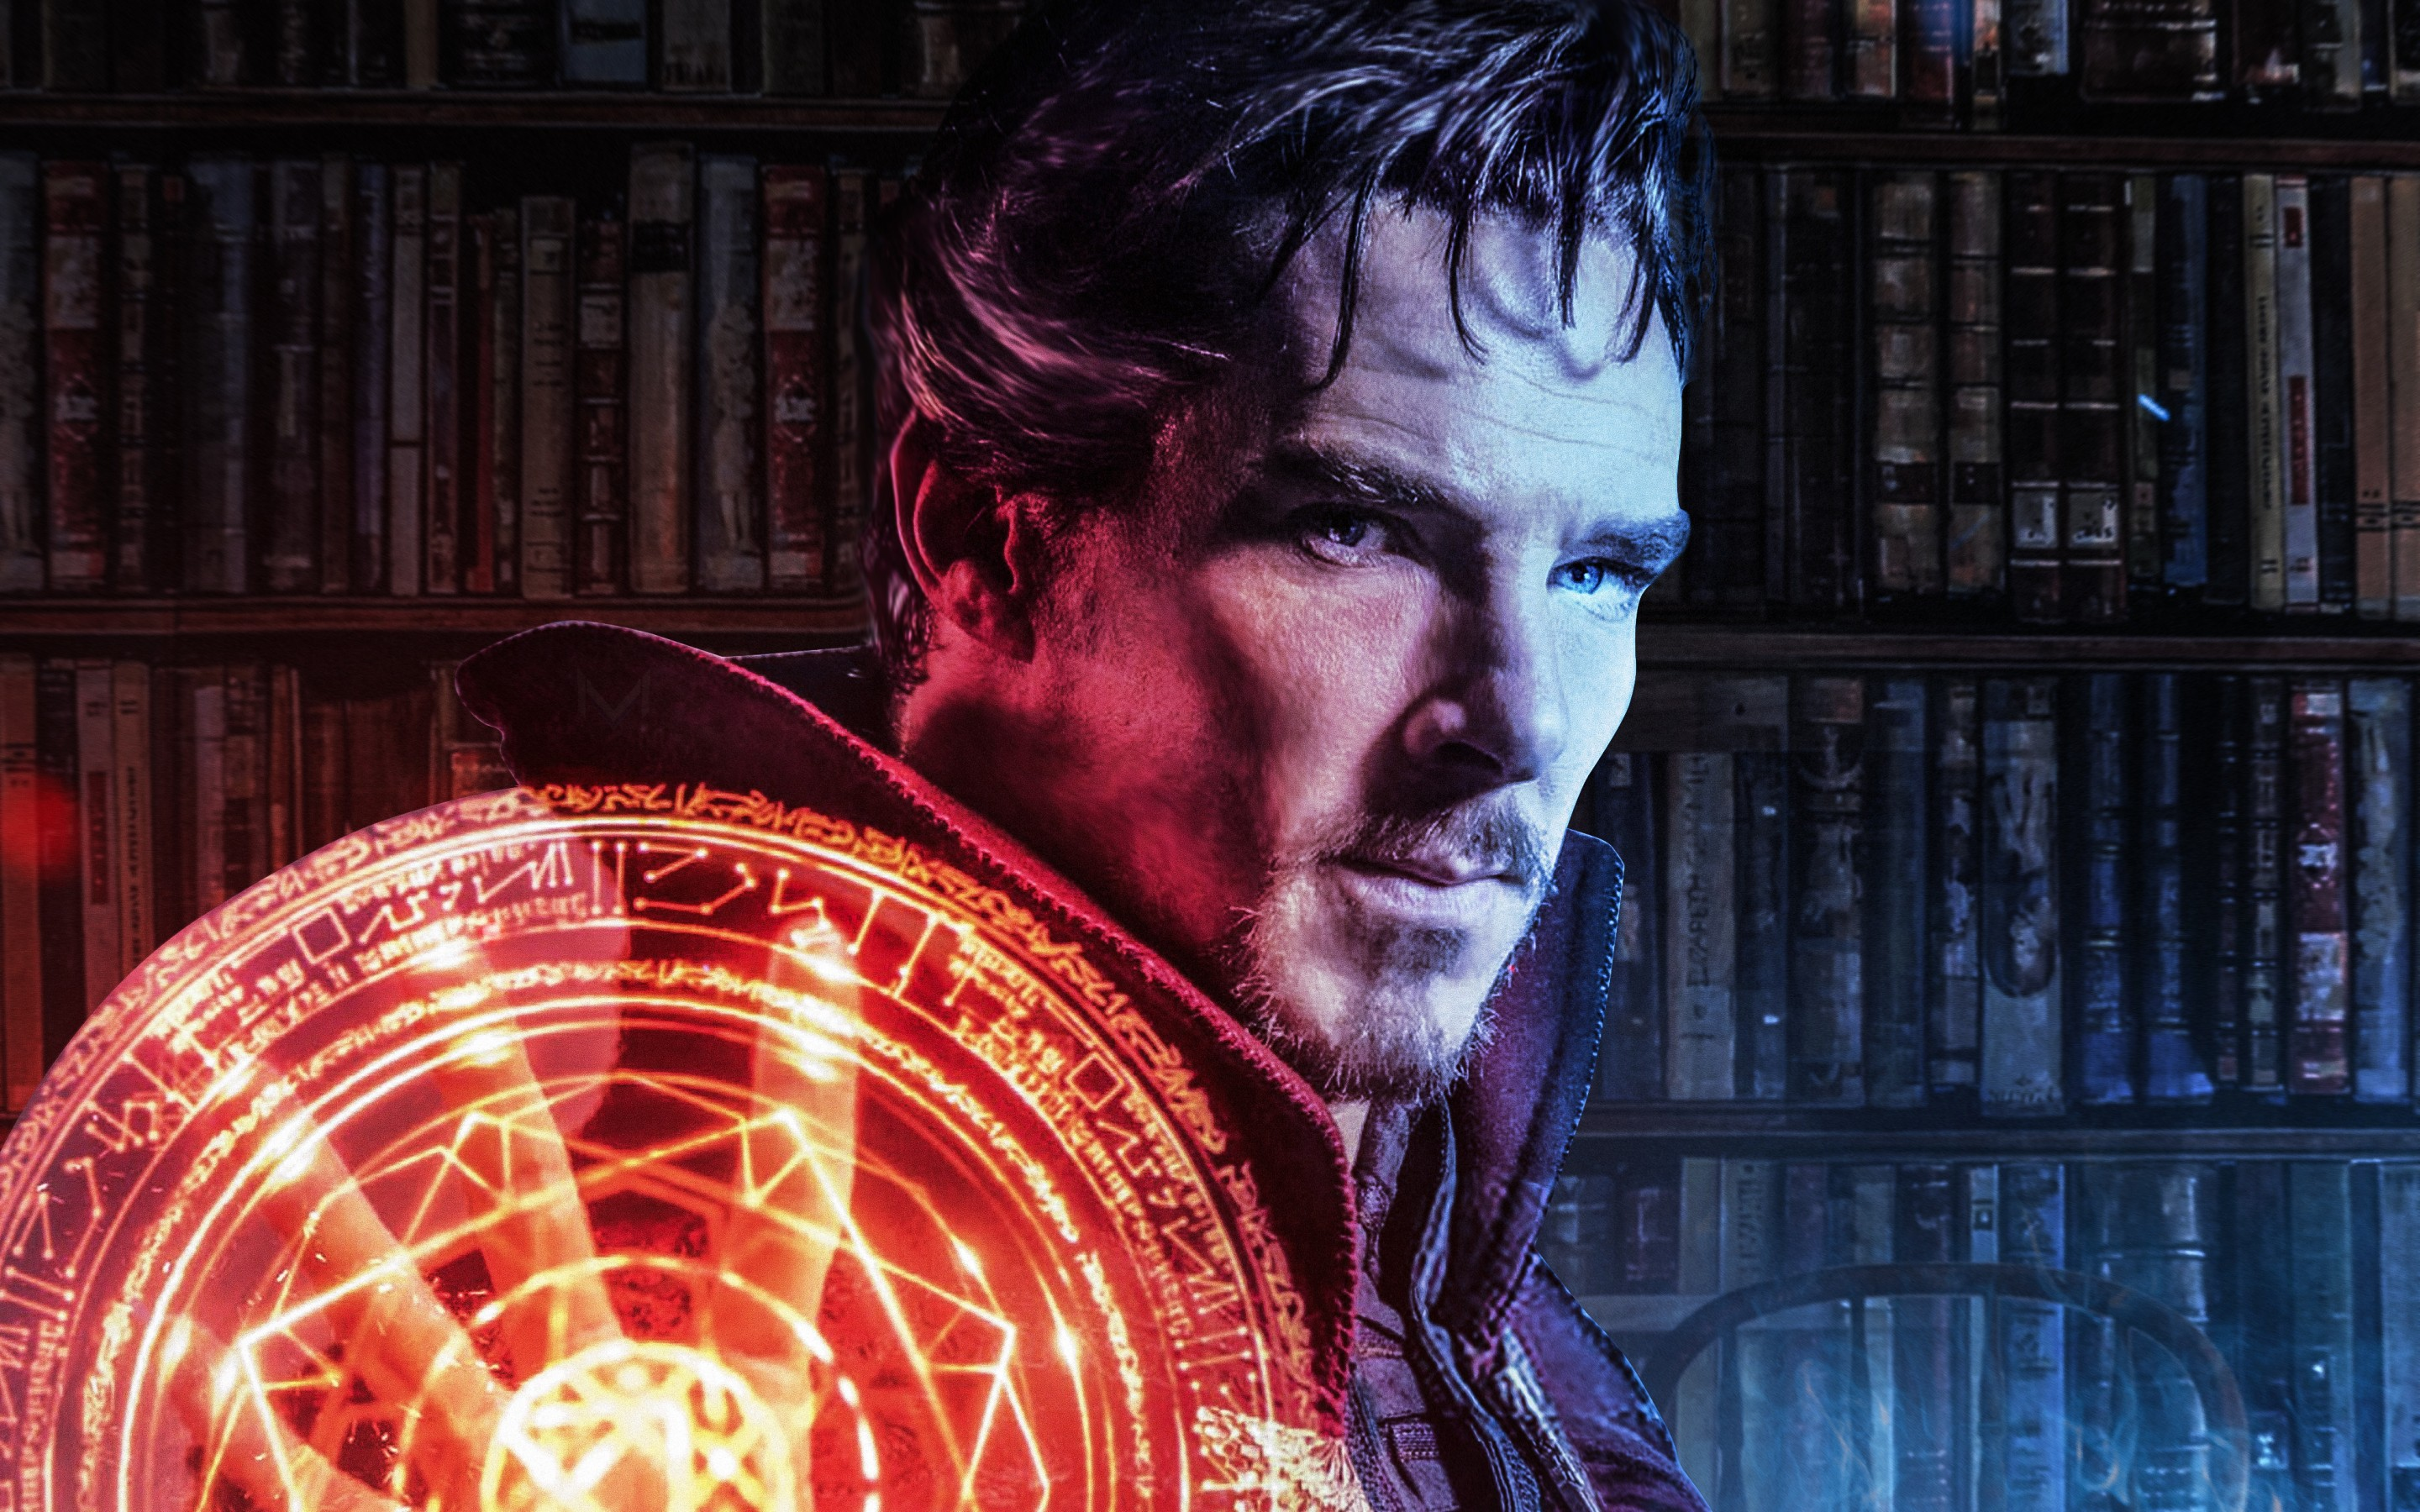 Iphone X Doctor Who Wallpaper Doctor Strange 4k Wallpapers Hd Wallpapers Id 24899